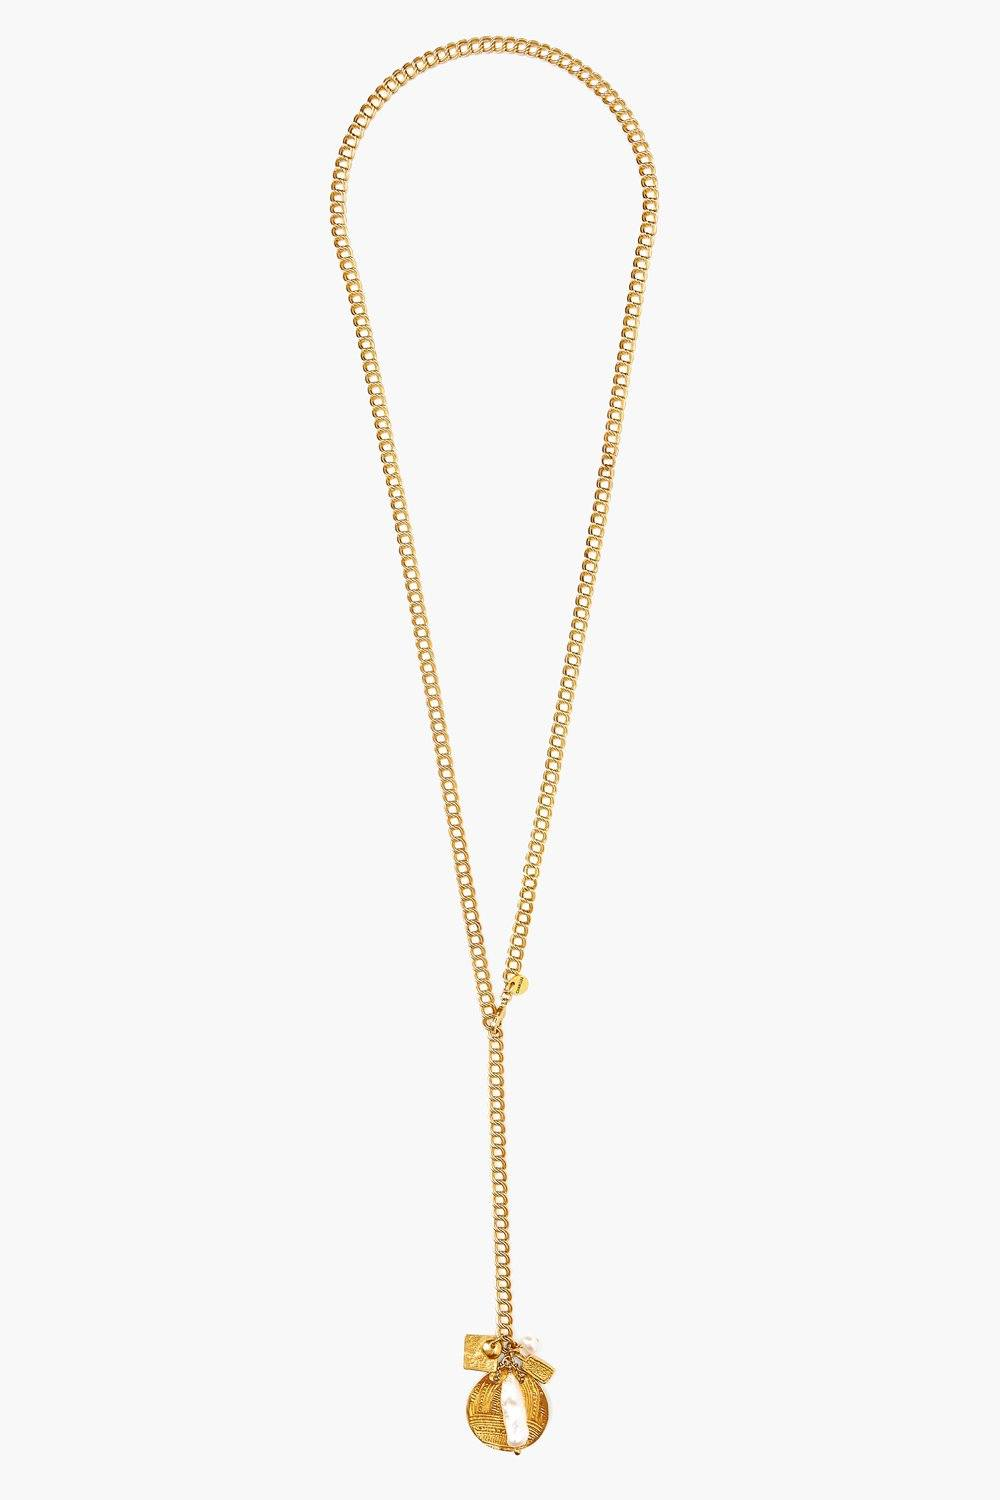 White Pearl Mix Gold Charm Lariat Necklace